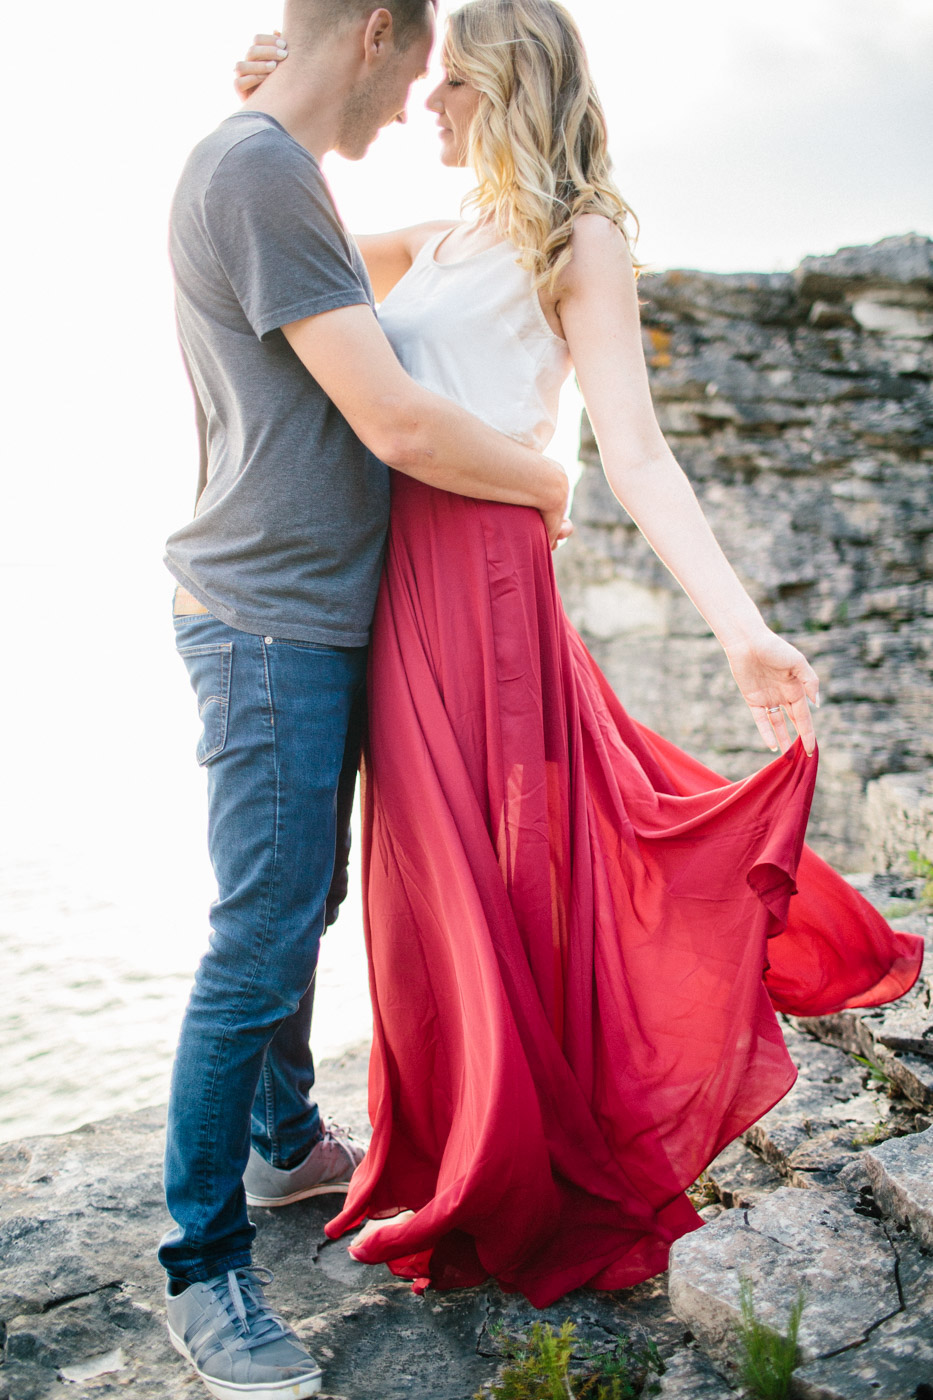 couples_adventure_session_tobermory-8.jpg